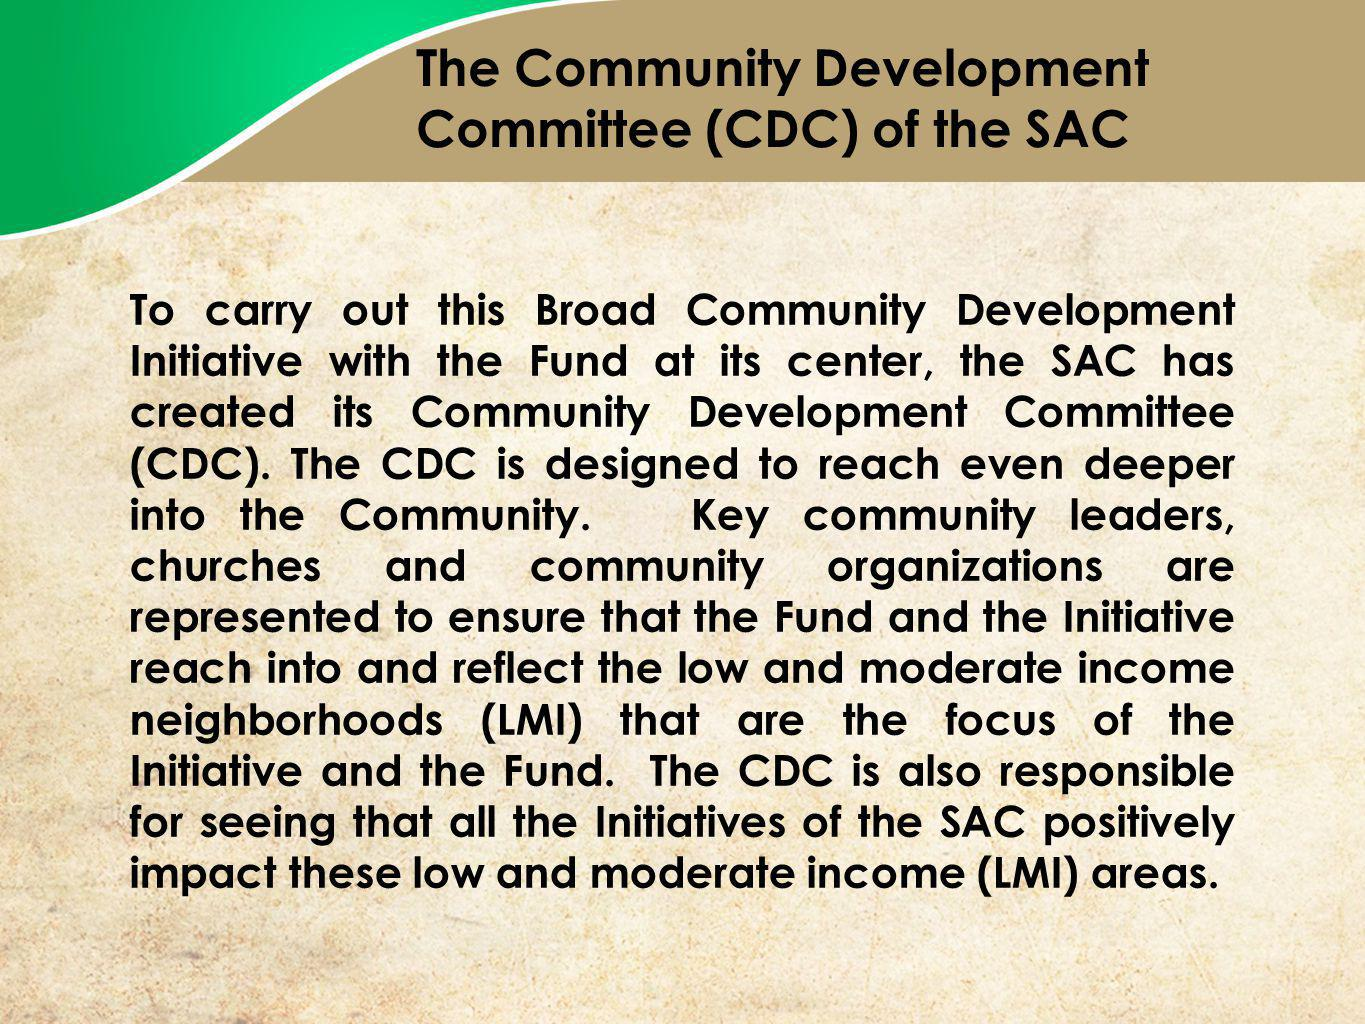 To carry out this Broad Community Development Initiative with the Fund at its center, the SAC has created its Community Development Committee (CDC).